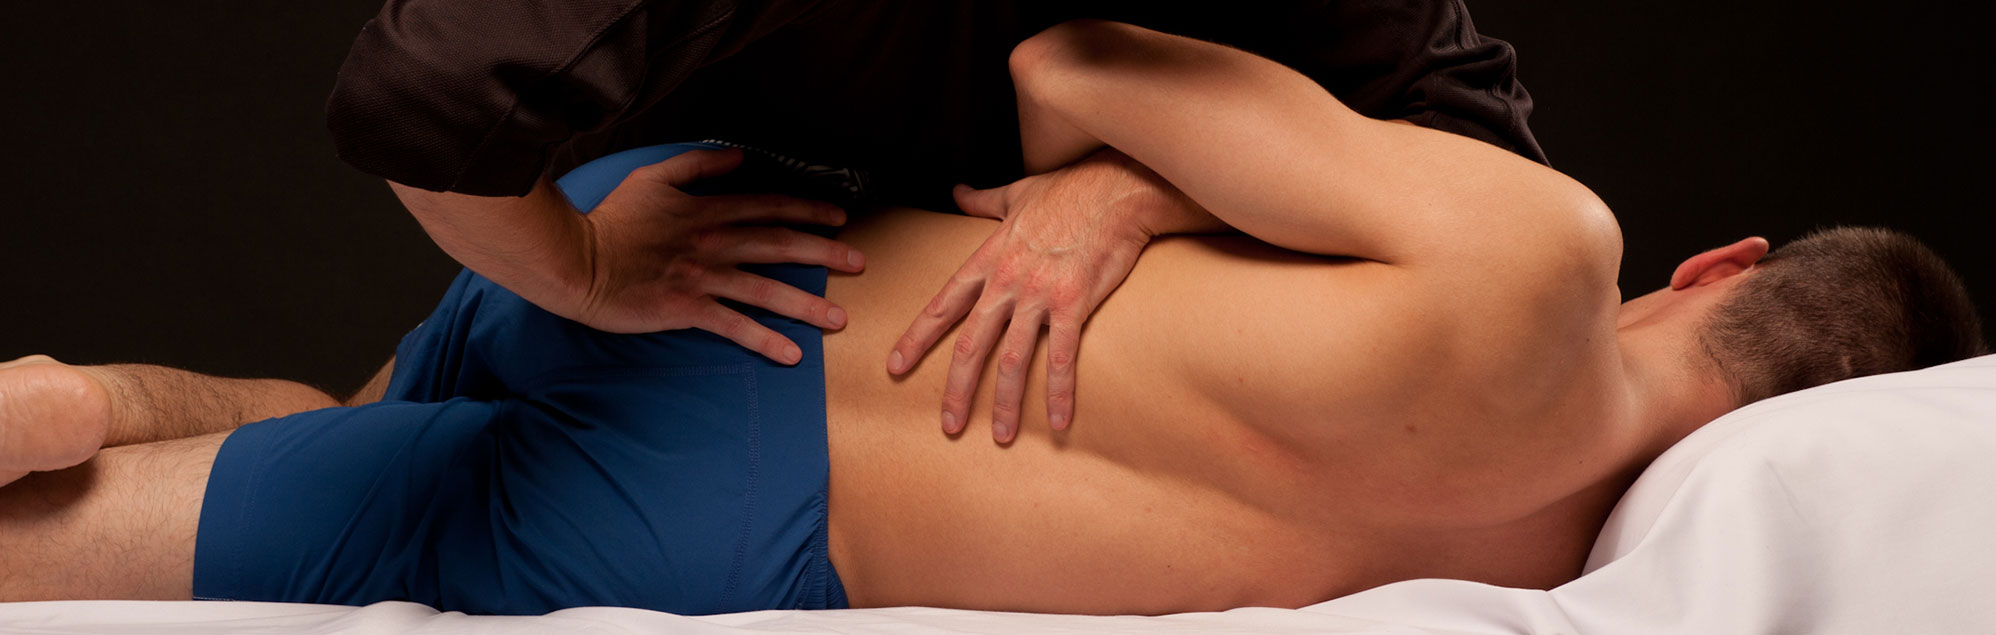 Centre-TMO-physiotherapie-osteopathie-massotherapie-Gatineau-Hull-MGP_4990